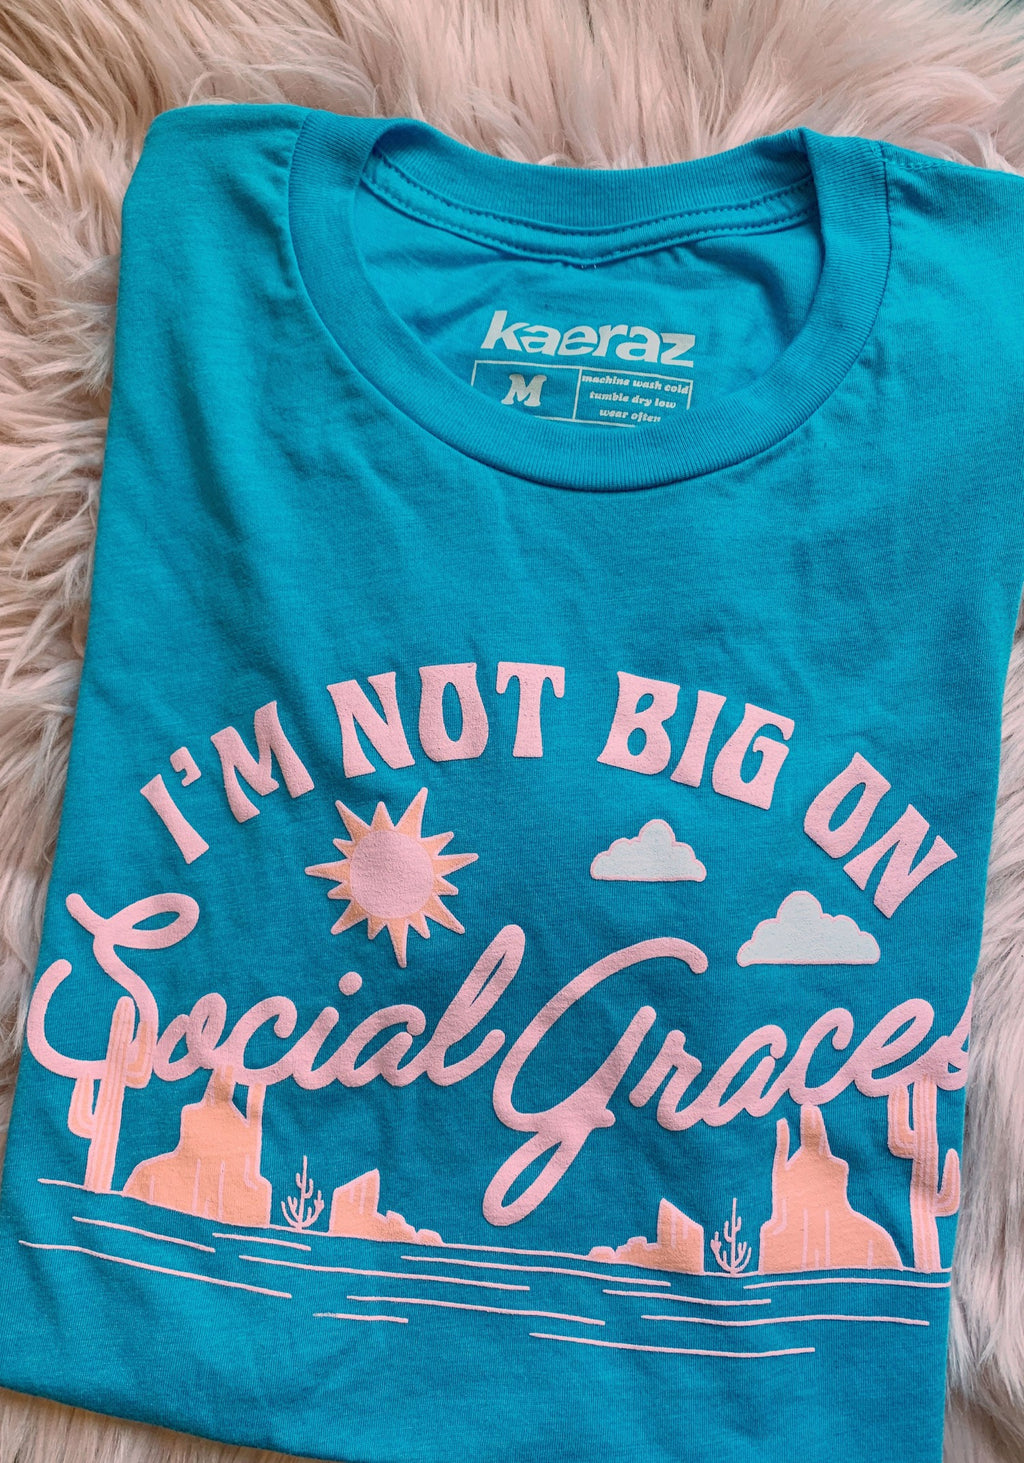 Social Graces Tee / womens graphic tees / country music song cowgirl / friends in low places brooks / vintage style 90s band tshirt